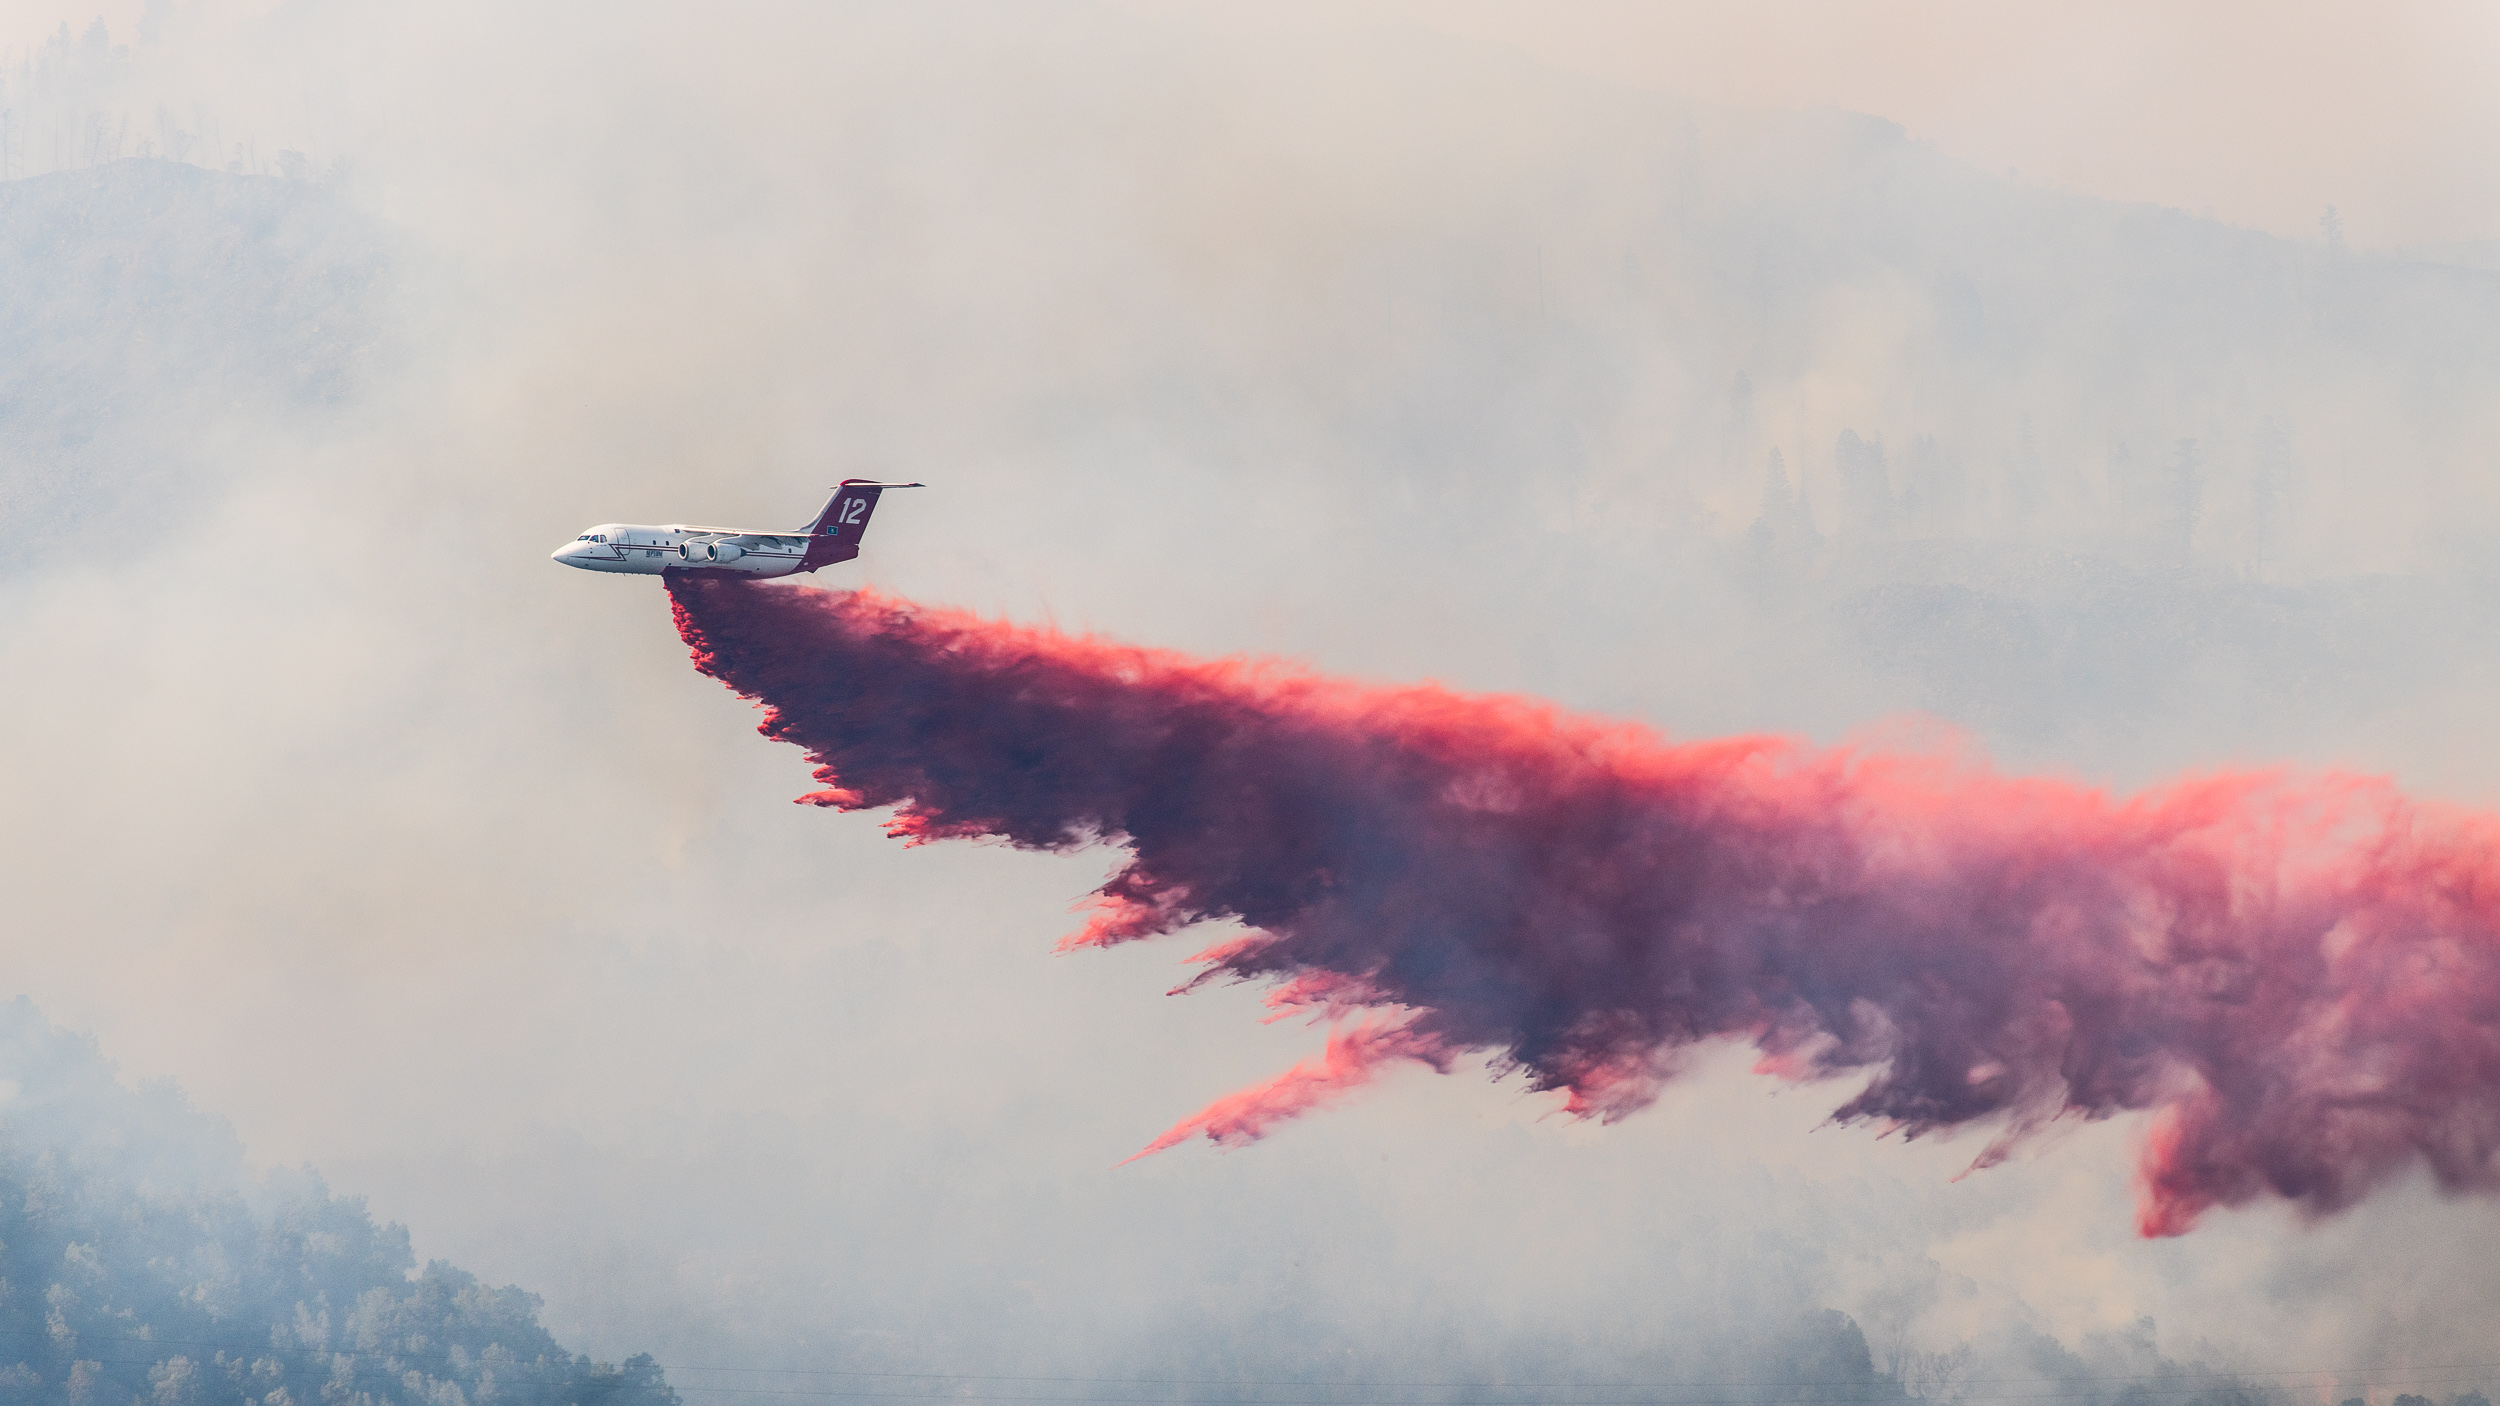 An air tanker drops a load of slurry at the edge of Basalt, CO on the Lake Christine fire on July 4th, 2018.